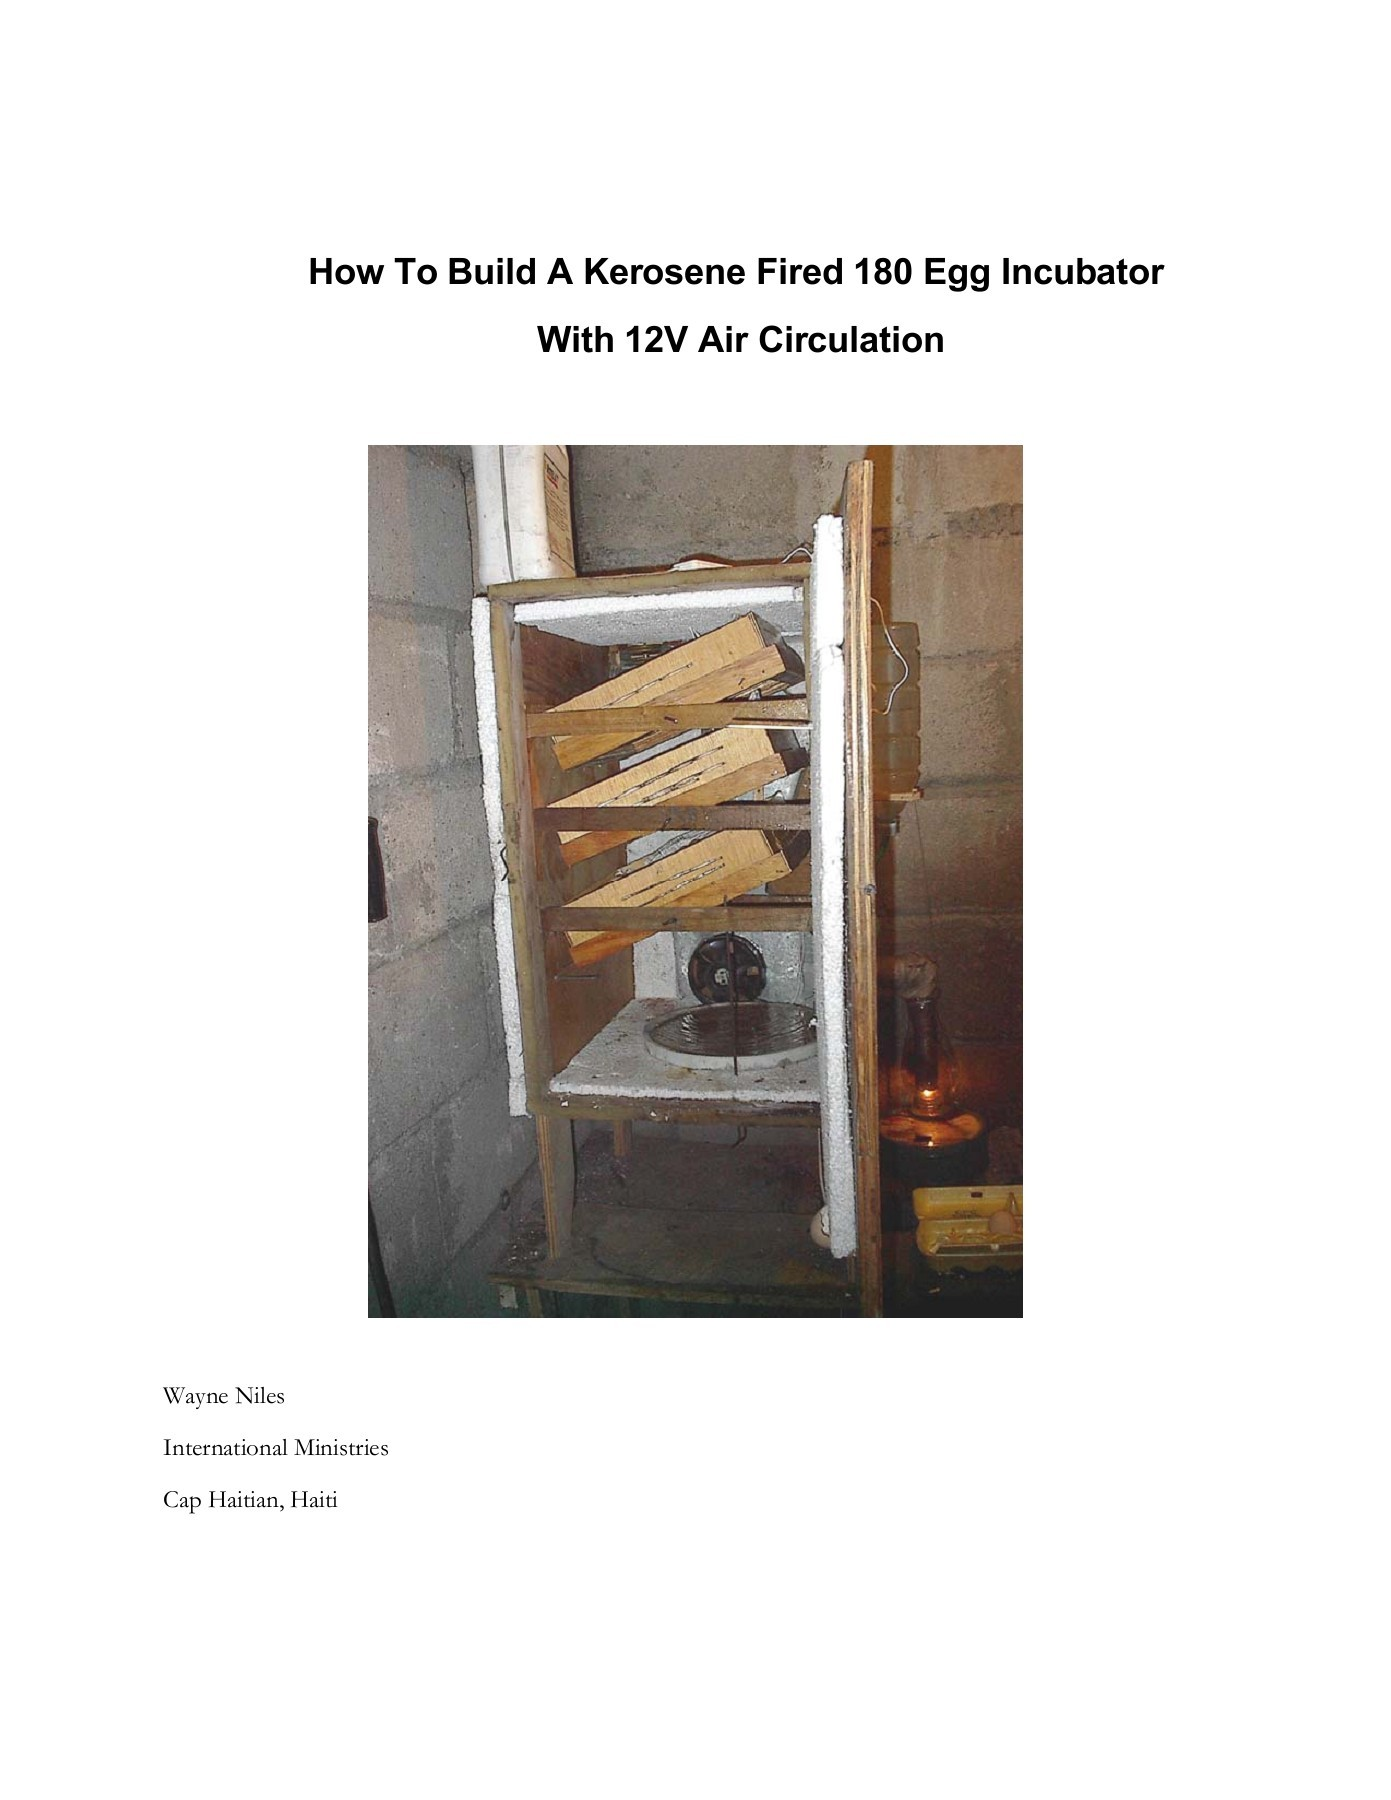 Diy Kerosene Lamp How To Build A Kerosene Fired 180 Egg Incubator With 12v Pages